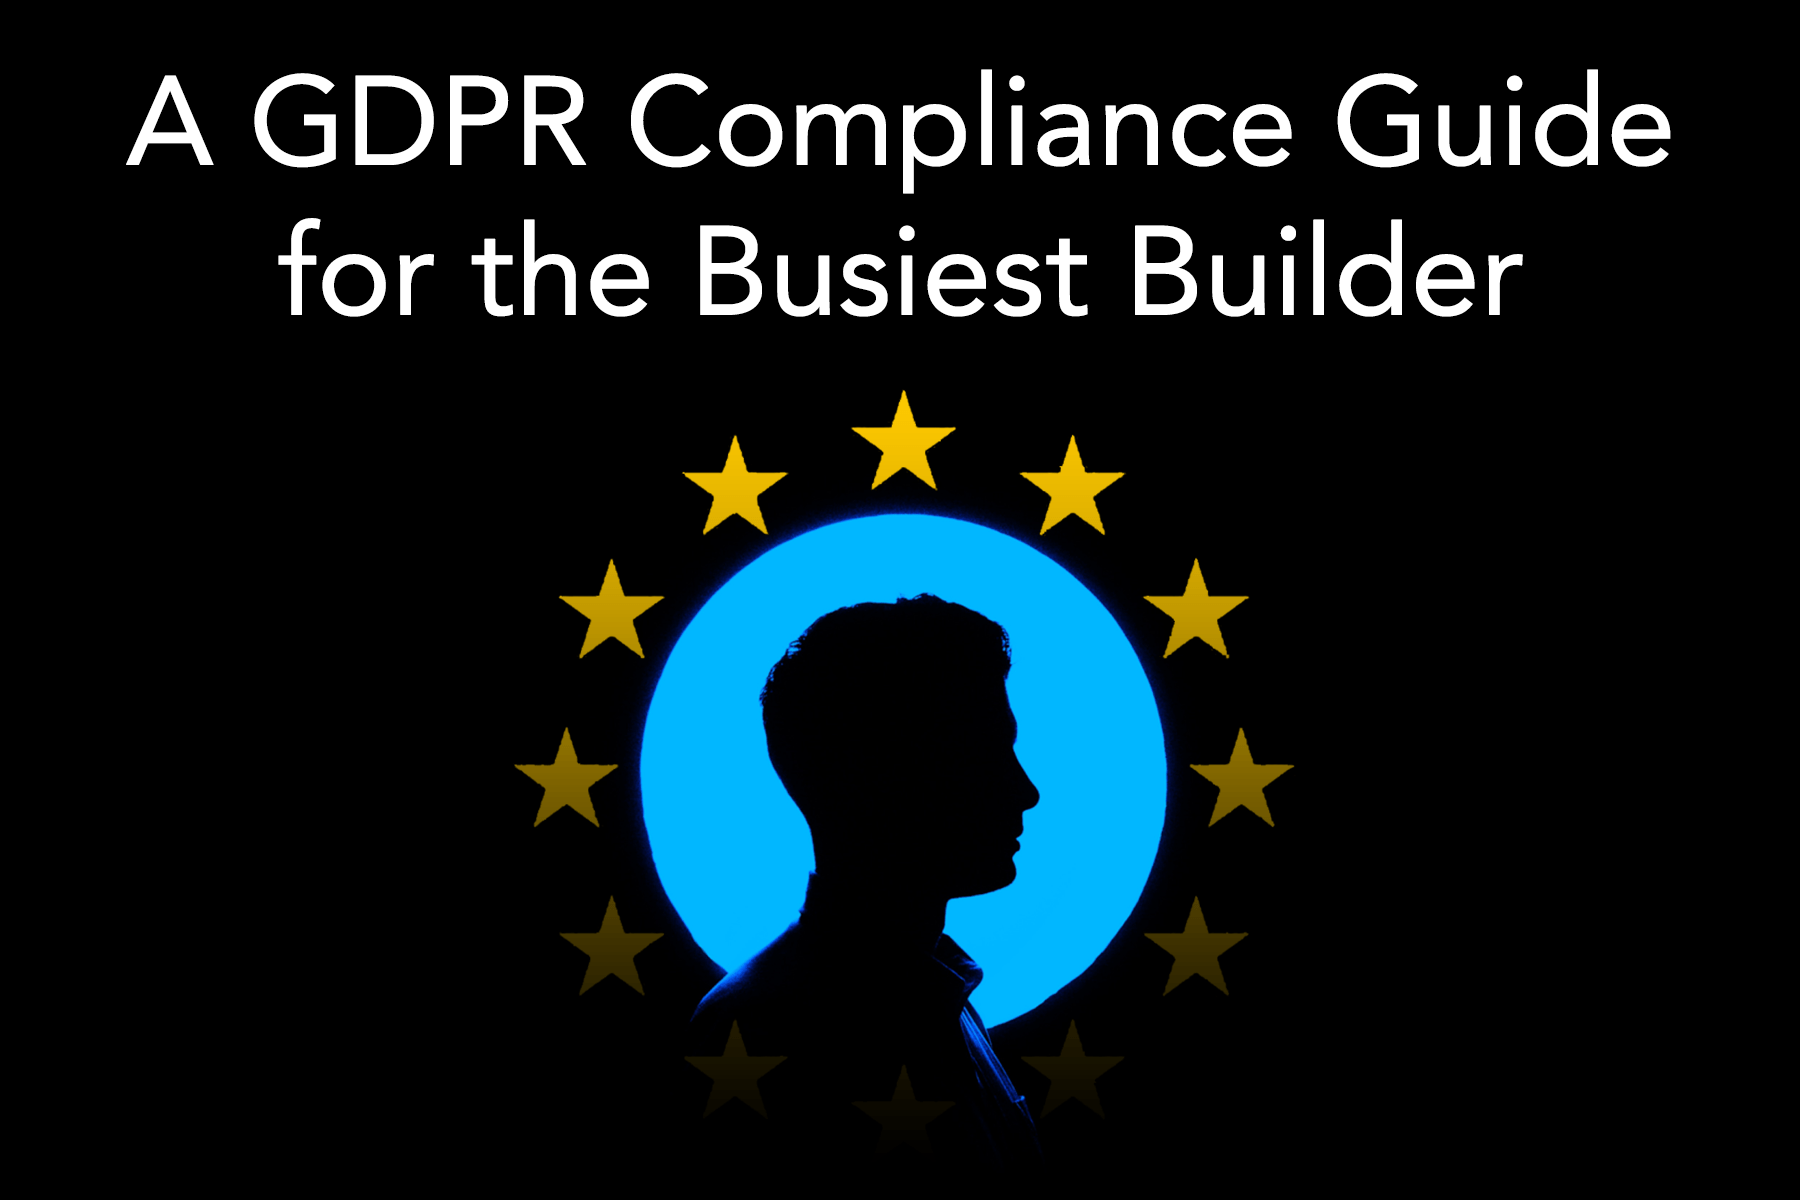 A GDPR Compliance Guide for the Busiest Builders